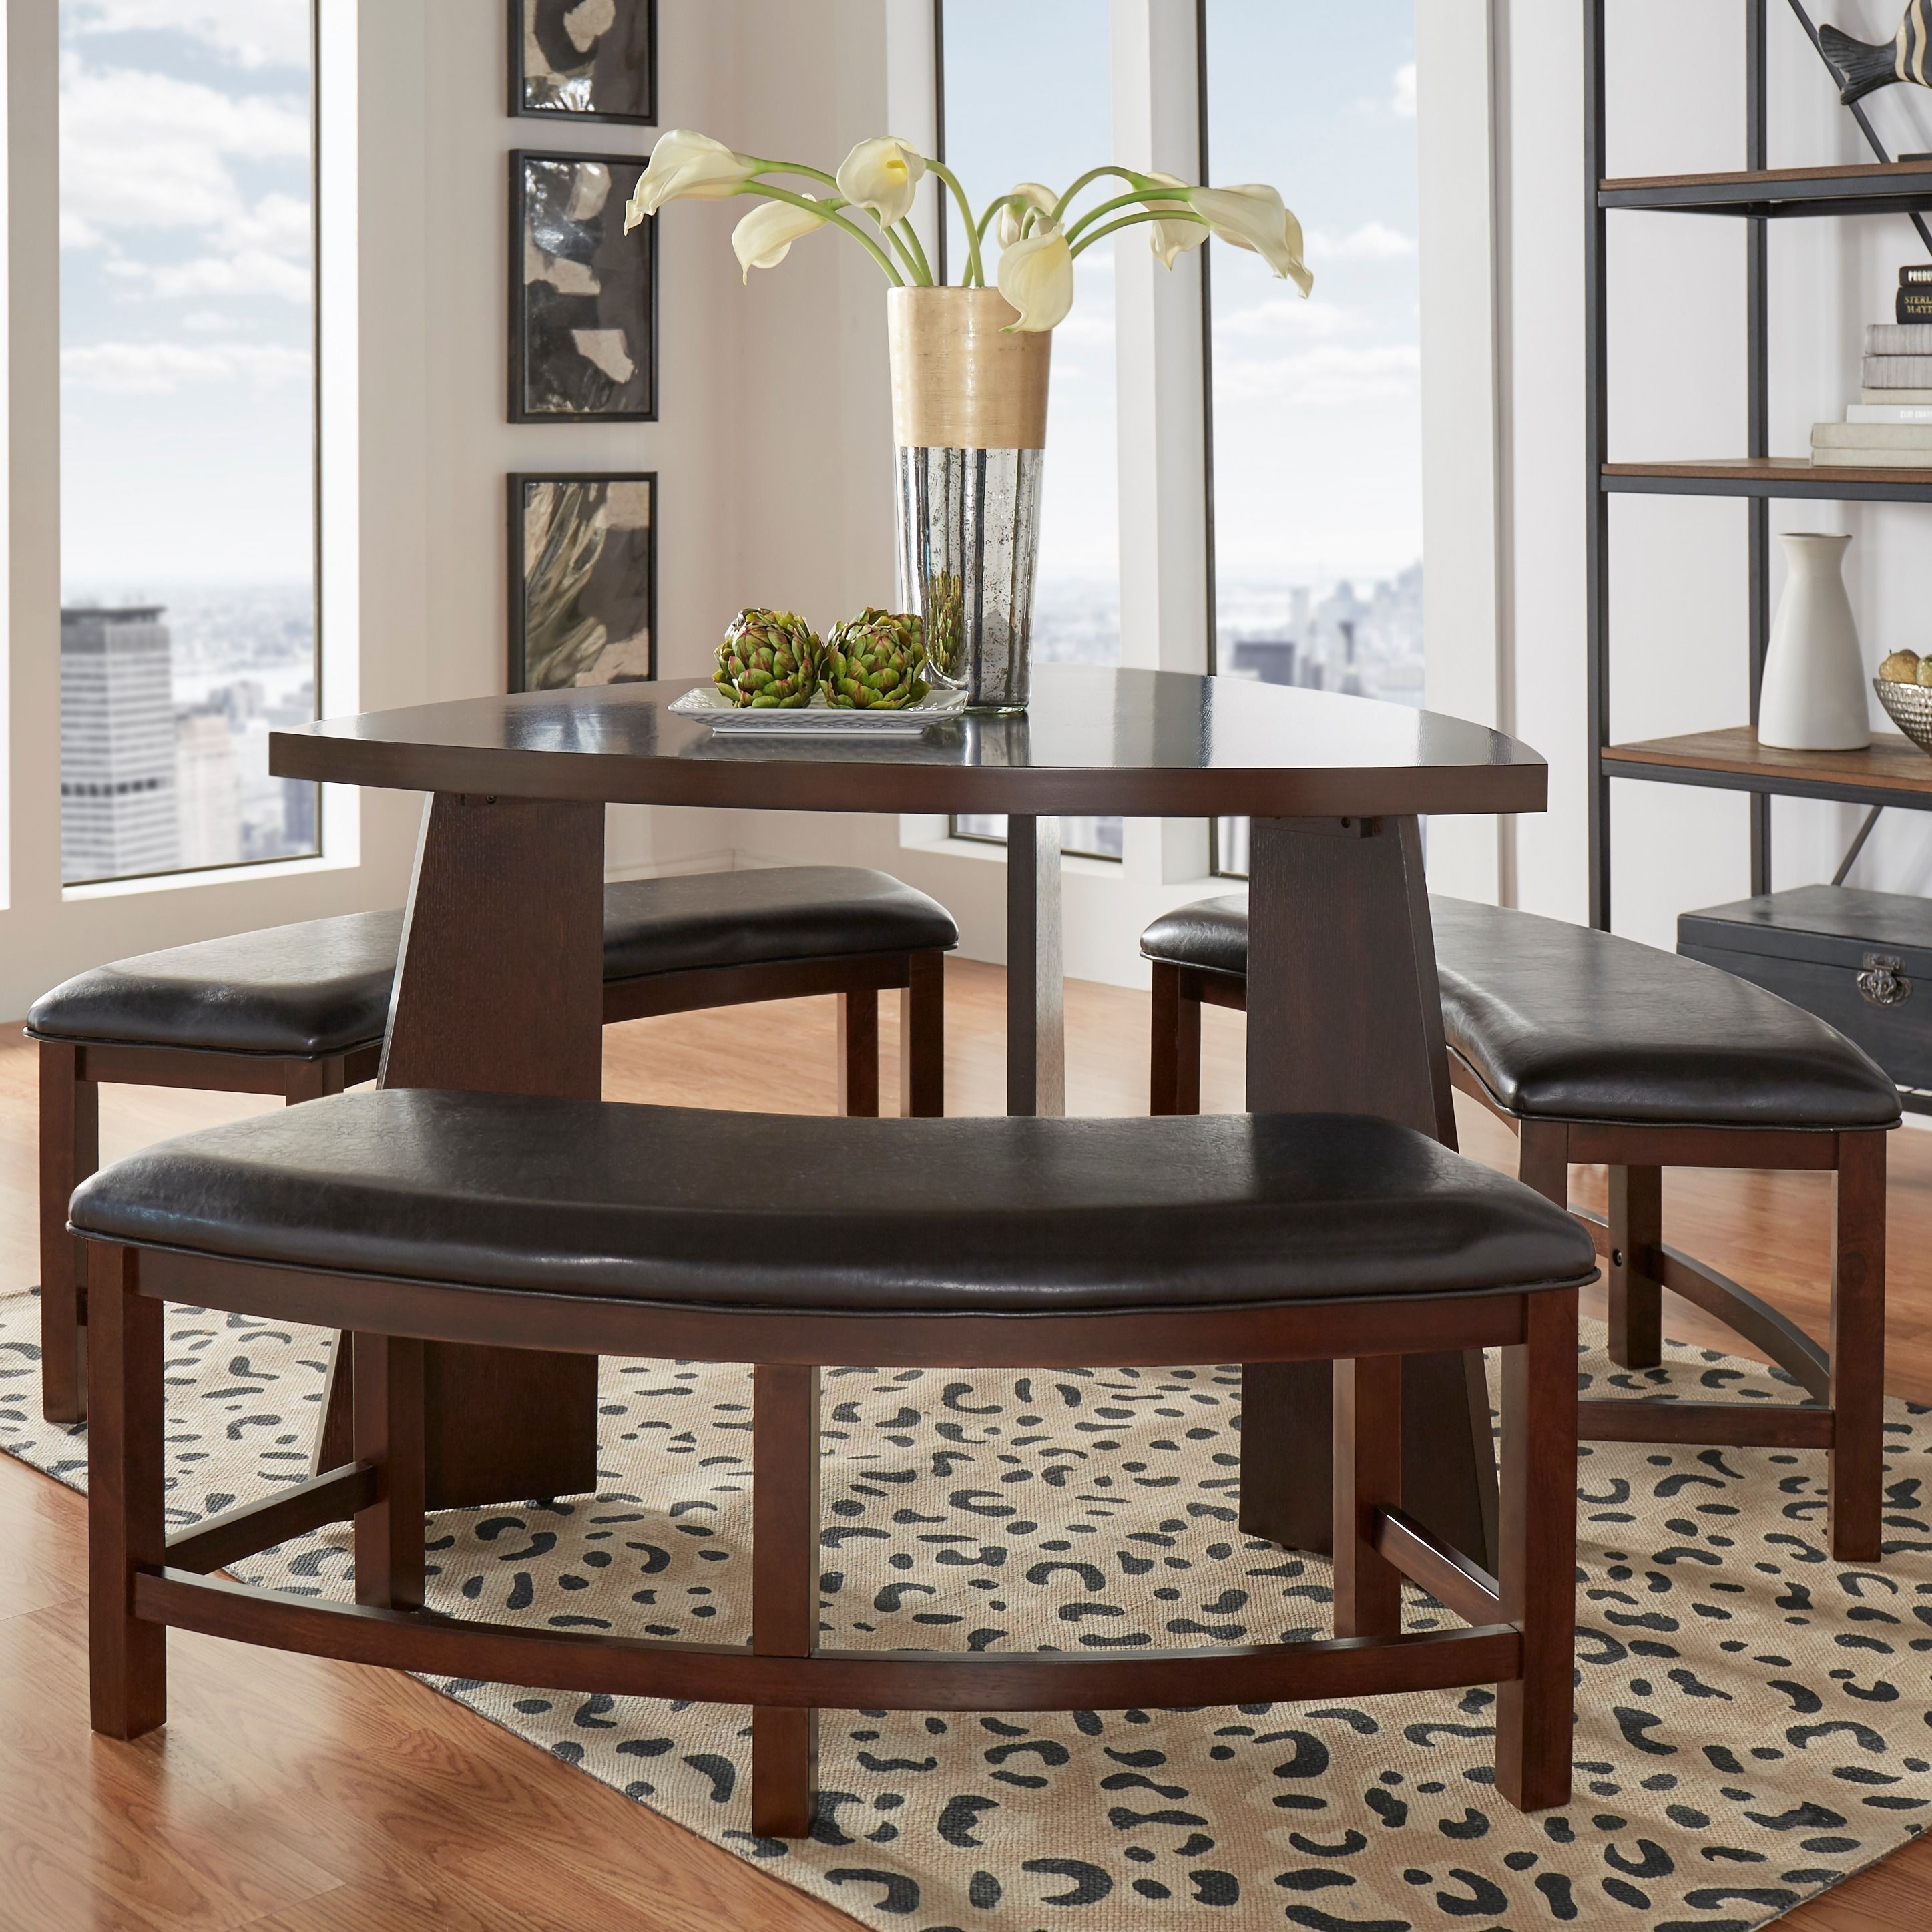 Upgrade Your Home Decor With This Triangle Shaped Paradise Dining Table.  This Dining Set Is Constructed Of A Durable Asian Rubberwood With Benches  That ... Pictures Gallery